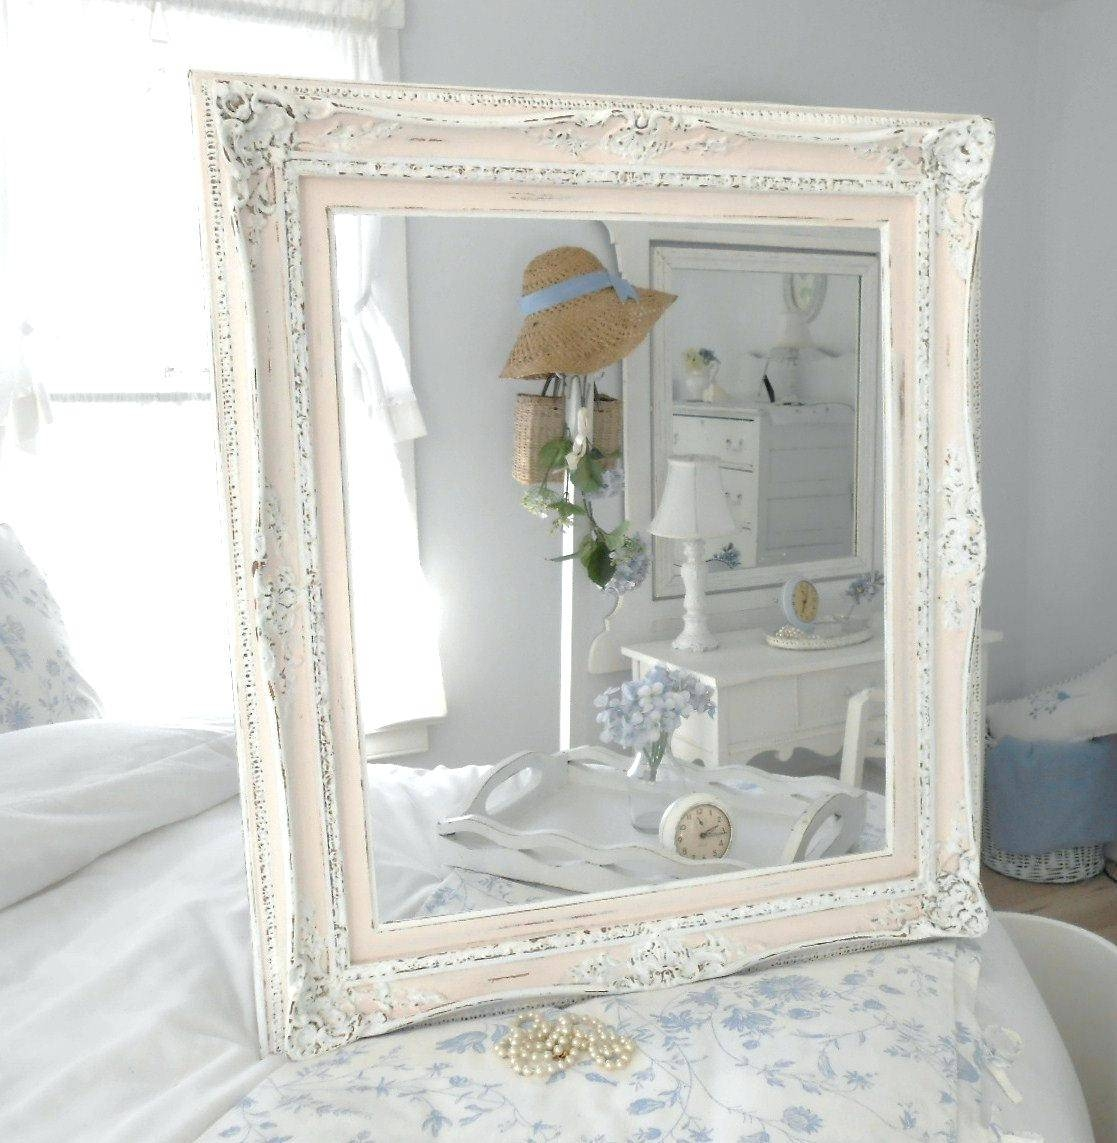 Shabbychicmirror 2Shabby Chic Mirrors Cheap White Shabby Mirror throughout White Shabby Chic Mirrors Sale (Image 23 of 25)